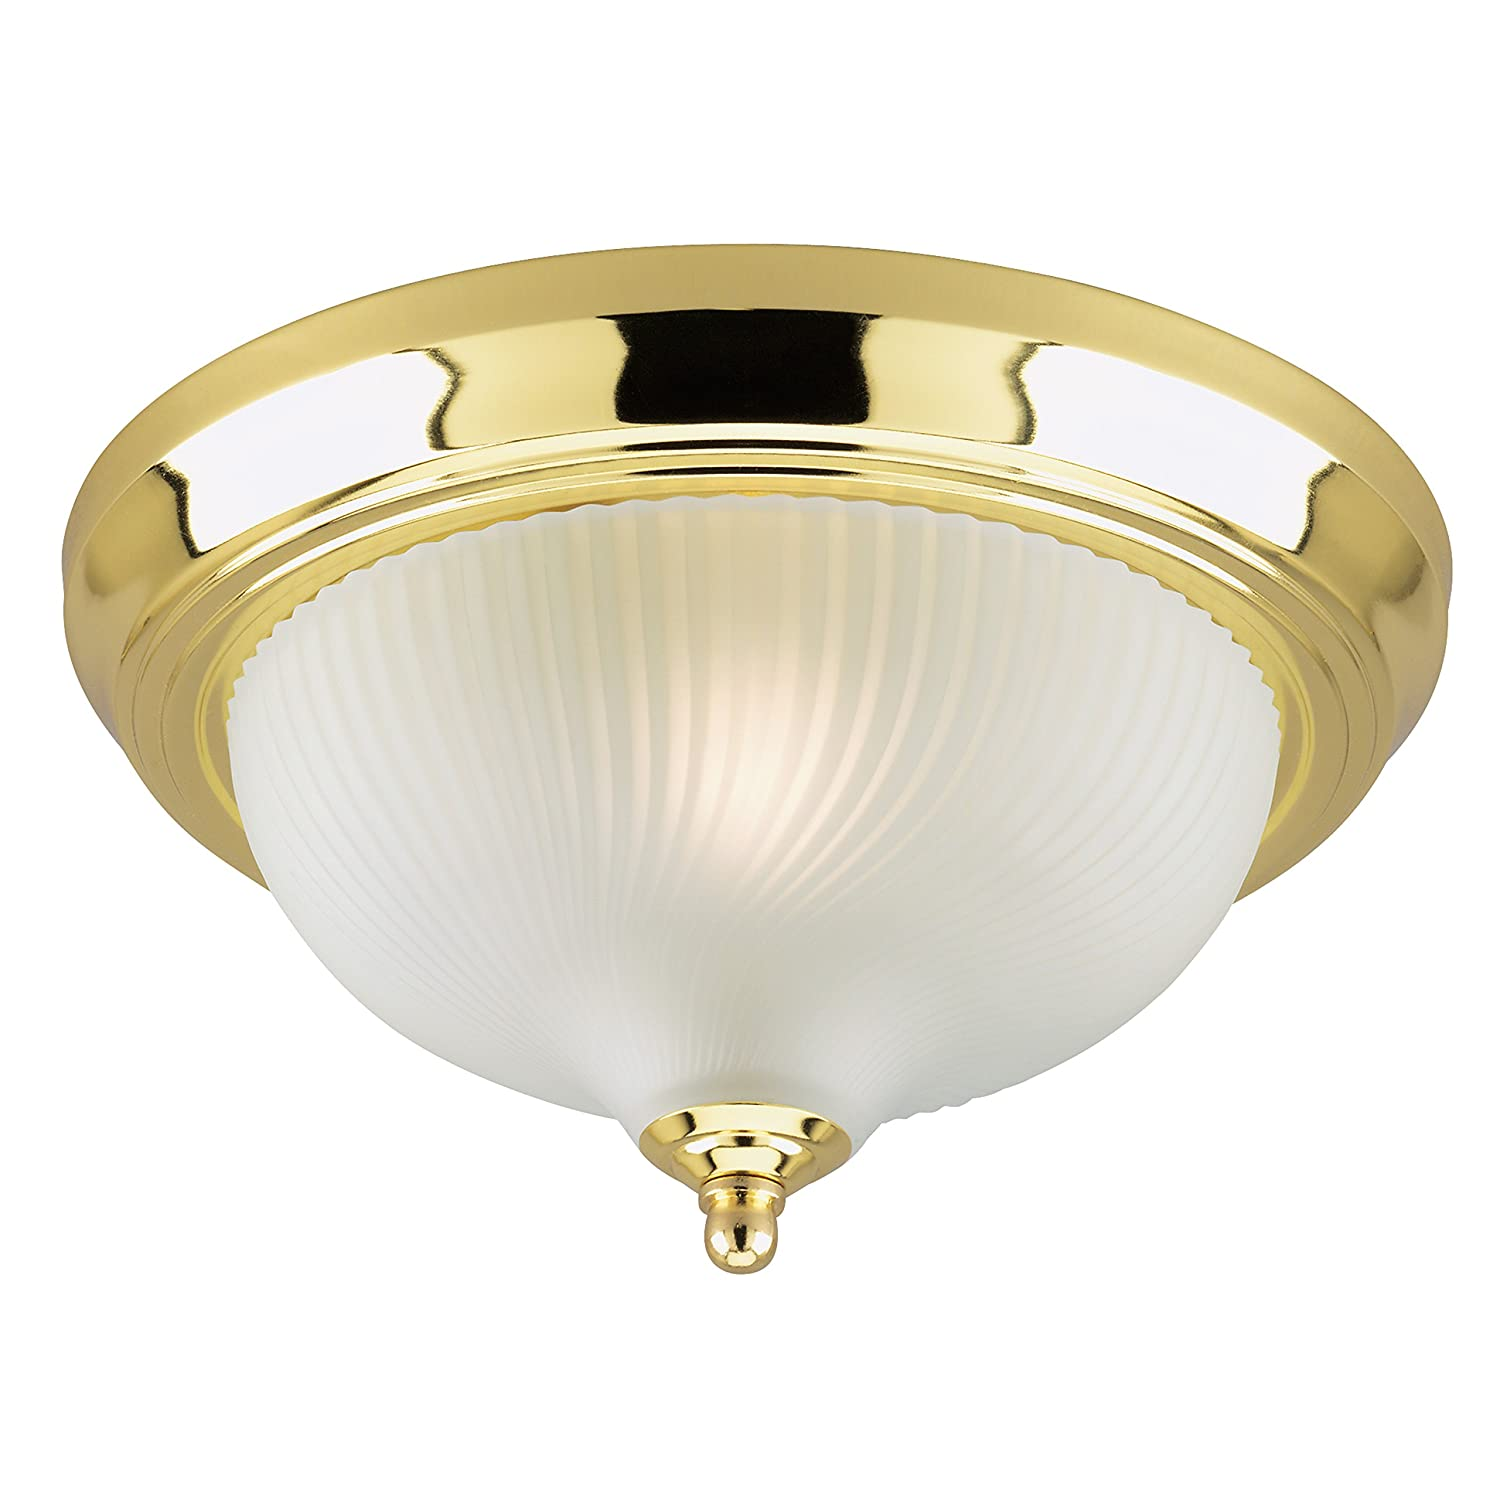 Amazon com westinghouse lighting corp 11 1 4 inch ceiling fixture polished brass home improvement